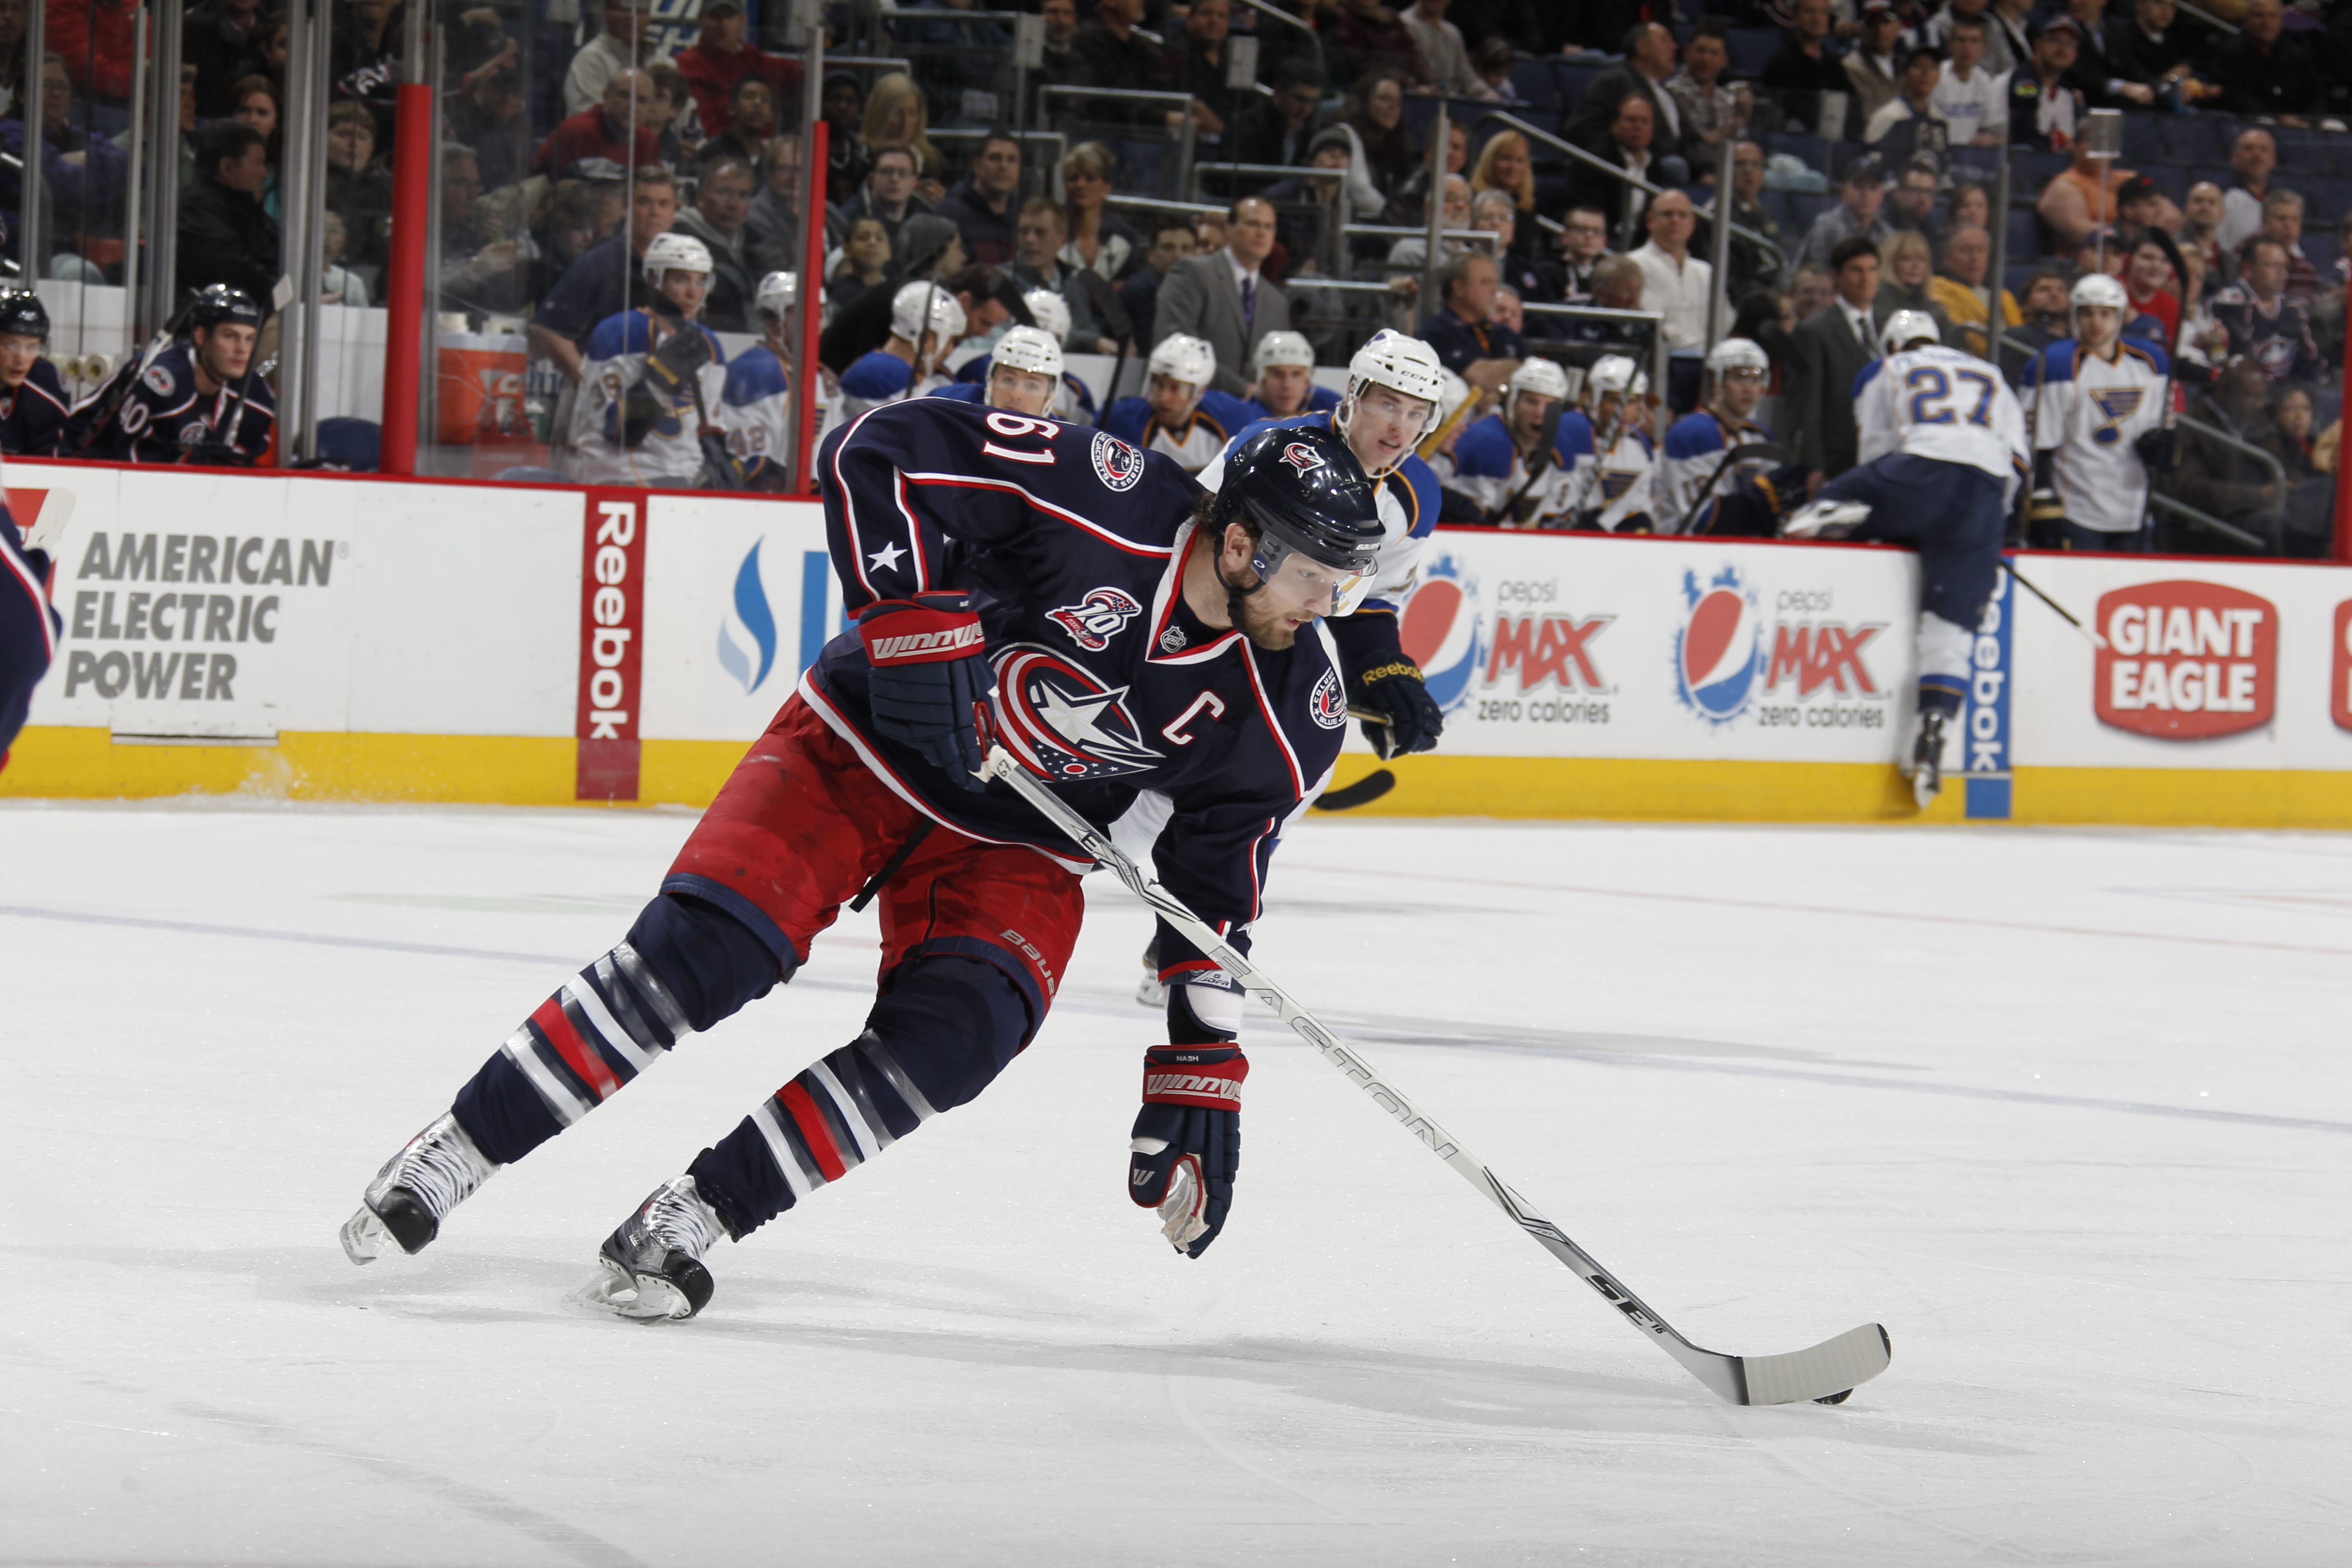 COLUMBUS, OH - MARCH 09:  Rick Nash #61 of the Columbus Blue Jackets skates against the St. Louis Blues on March 9, 2011 at Nationwide Arena in Columbus, Ohio.  (Photo by Gregory Shamus/Getty Images)